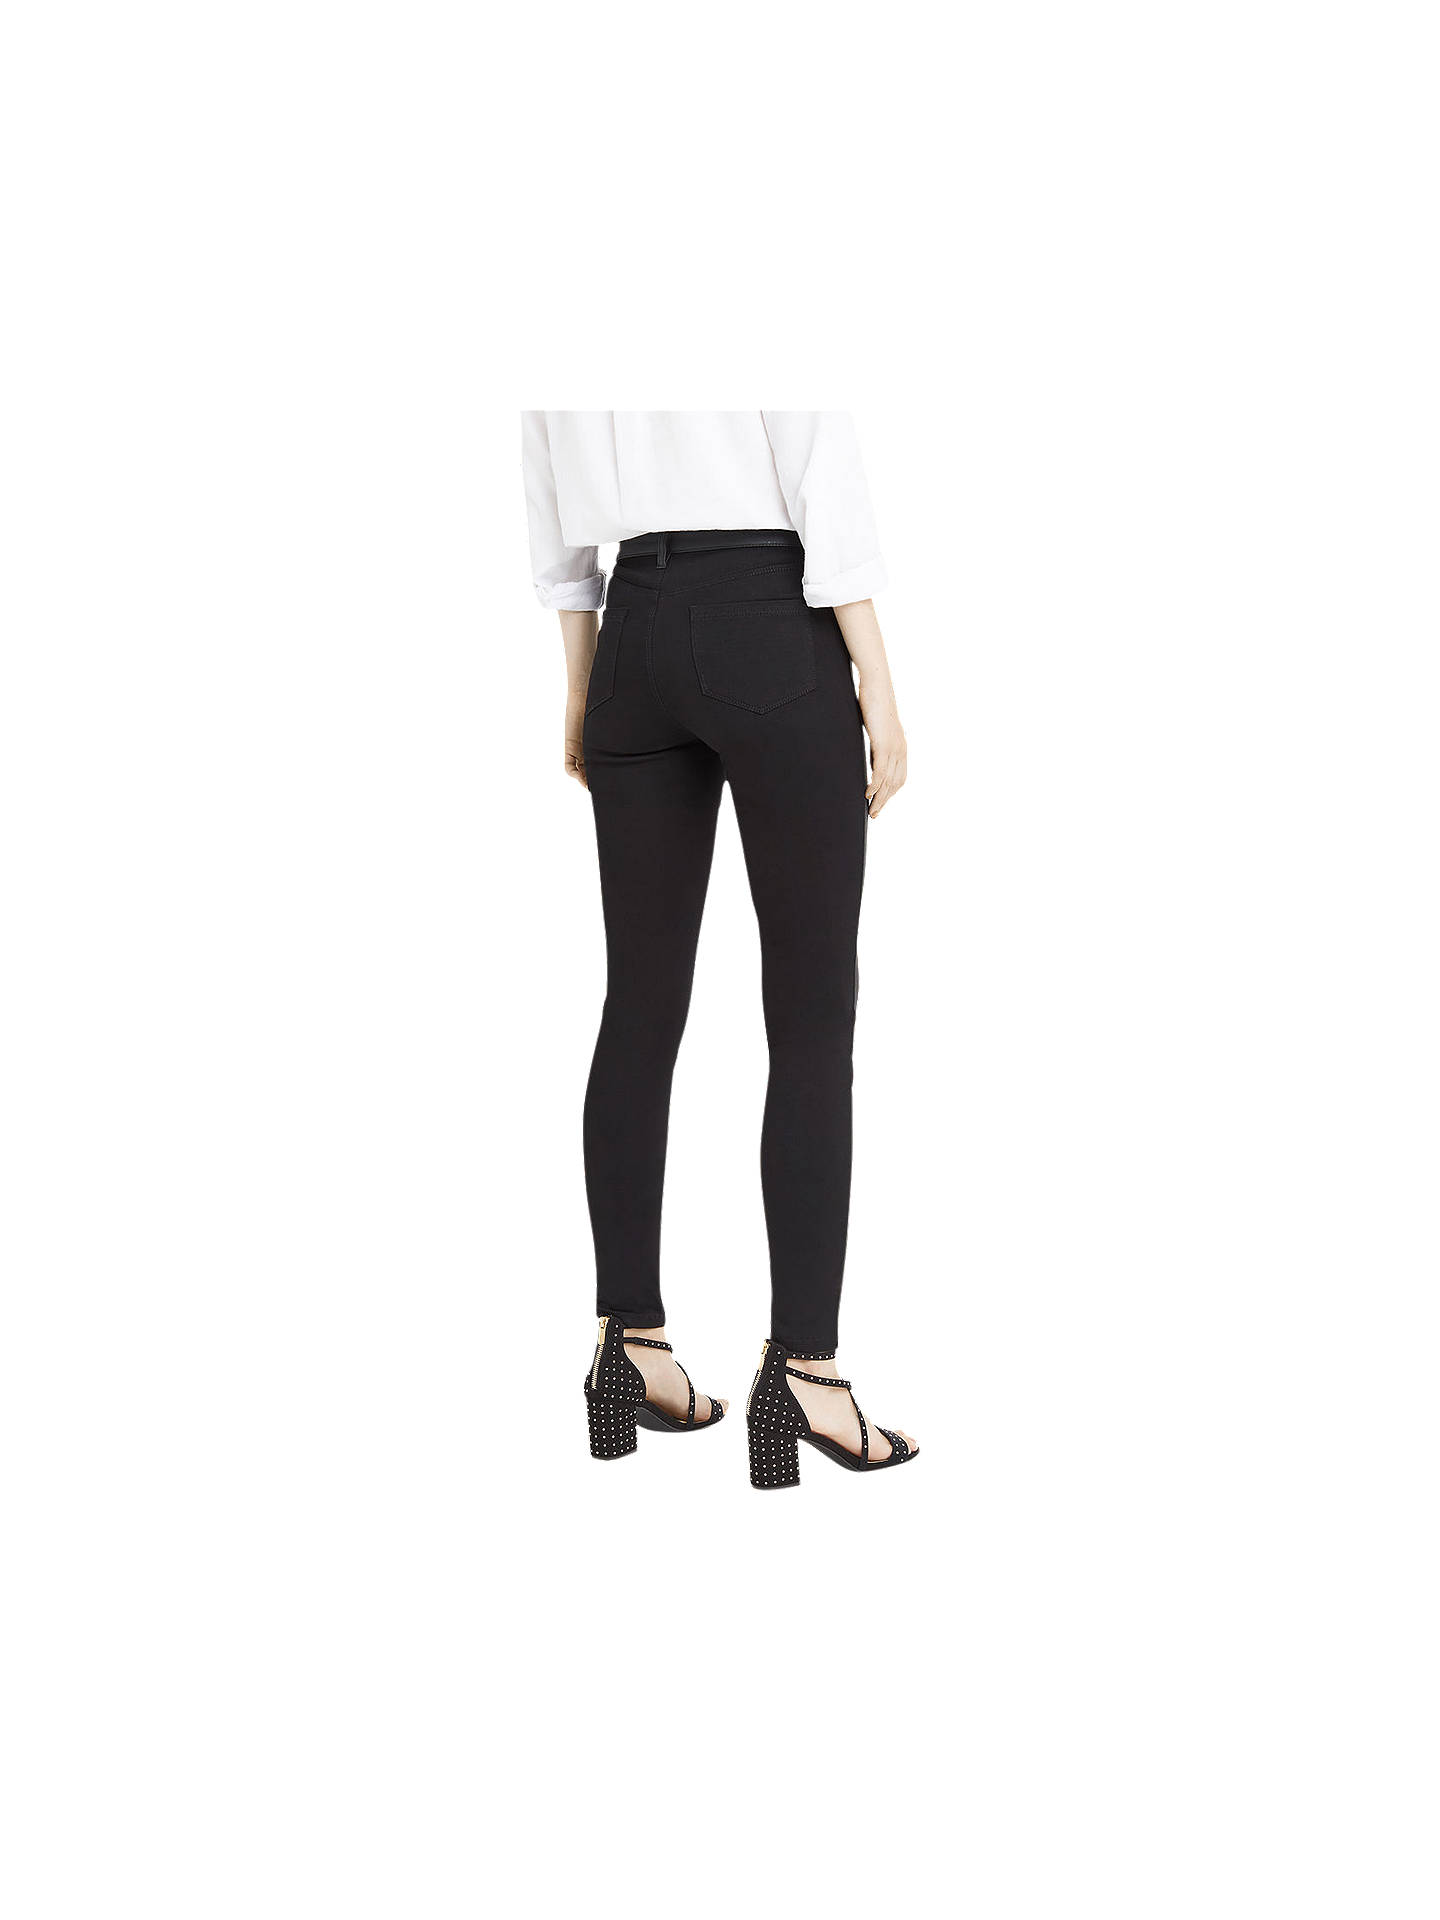 BuyOasis Coated Pinstitch Jeans , Black, 6 Online at johnlewis.com